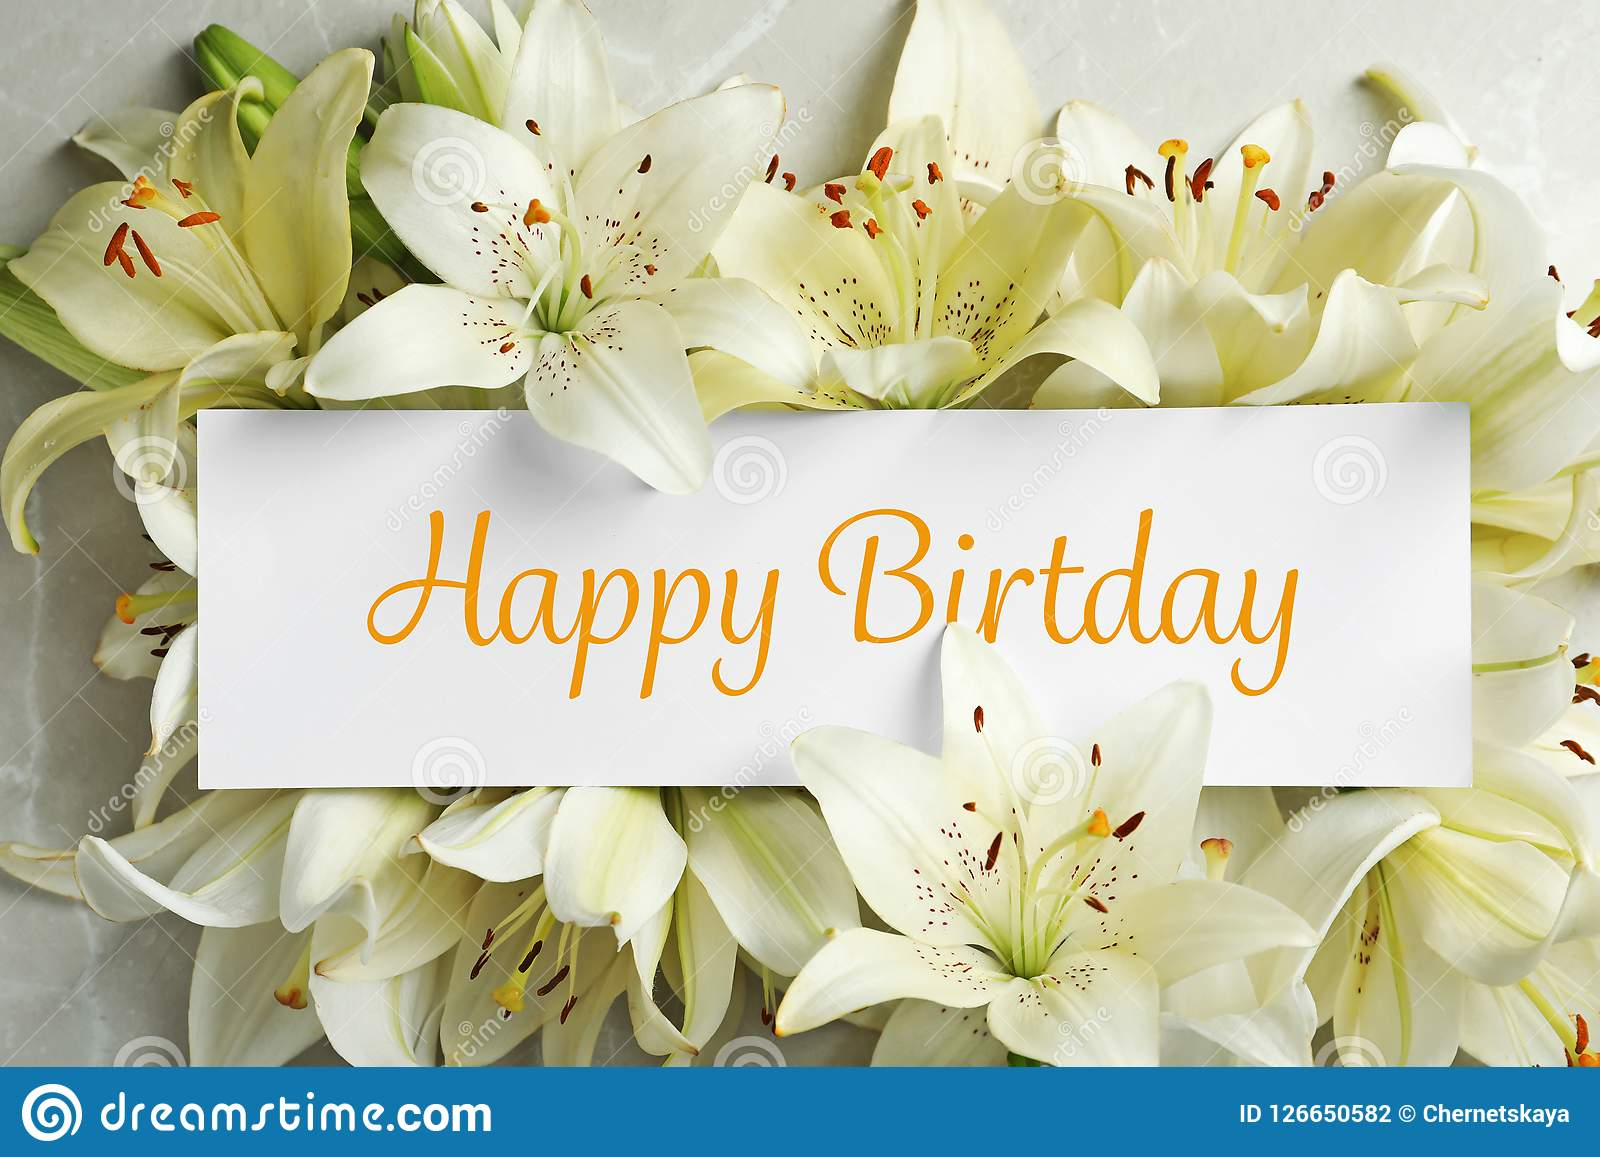 Composition Of Lily Flowers And Card With Greeting Happy Birthday Stock Photo Image Of Happy Object 126650582